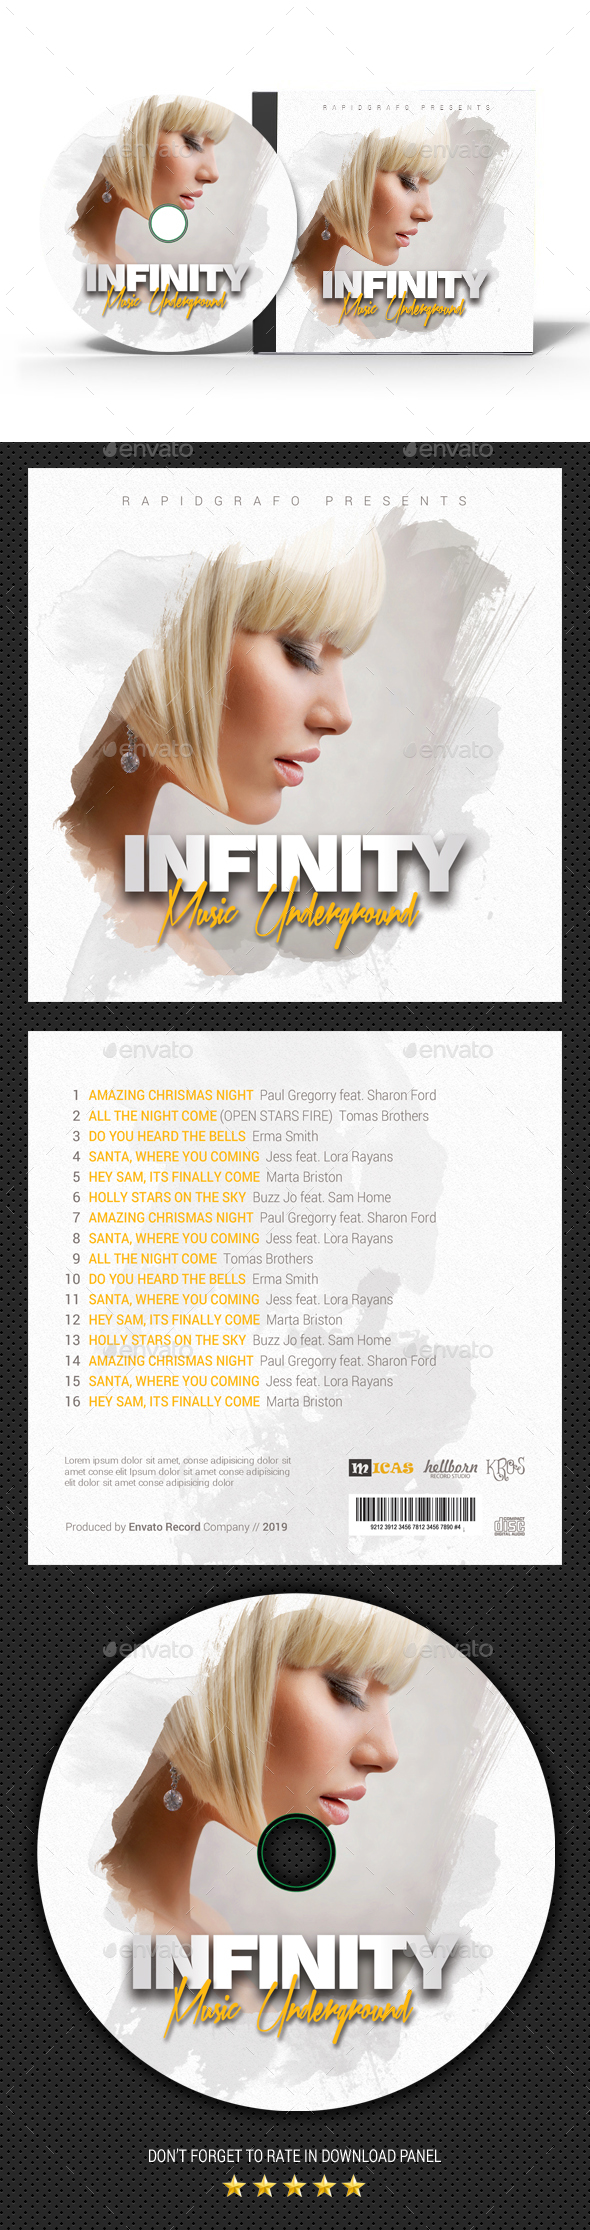 Infinity Music CD Cover - CD & DVD Artwork Print Templates